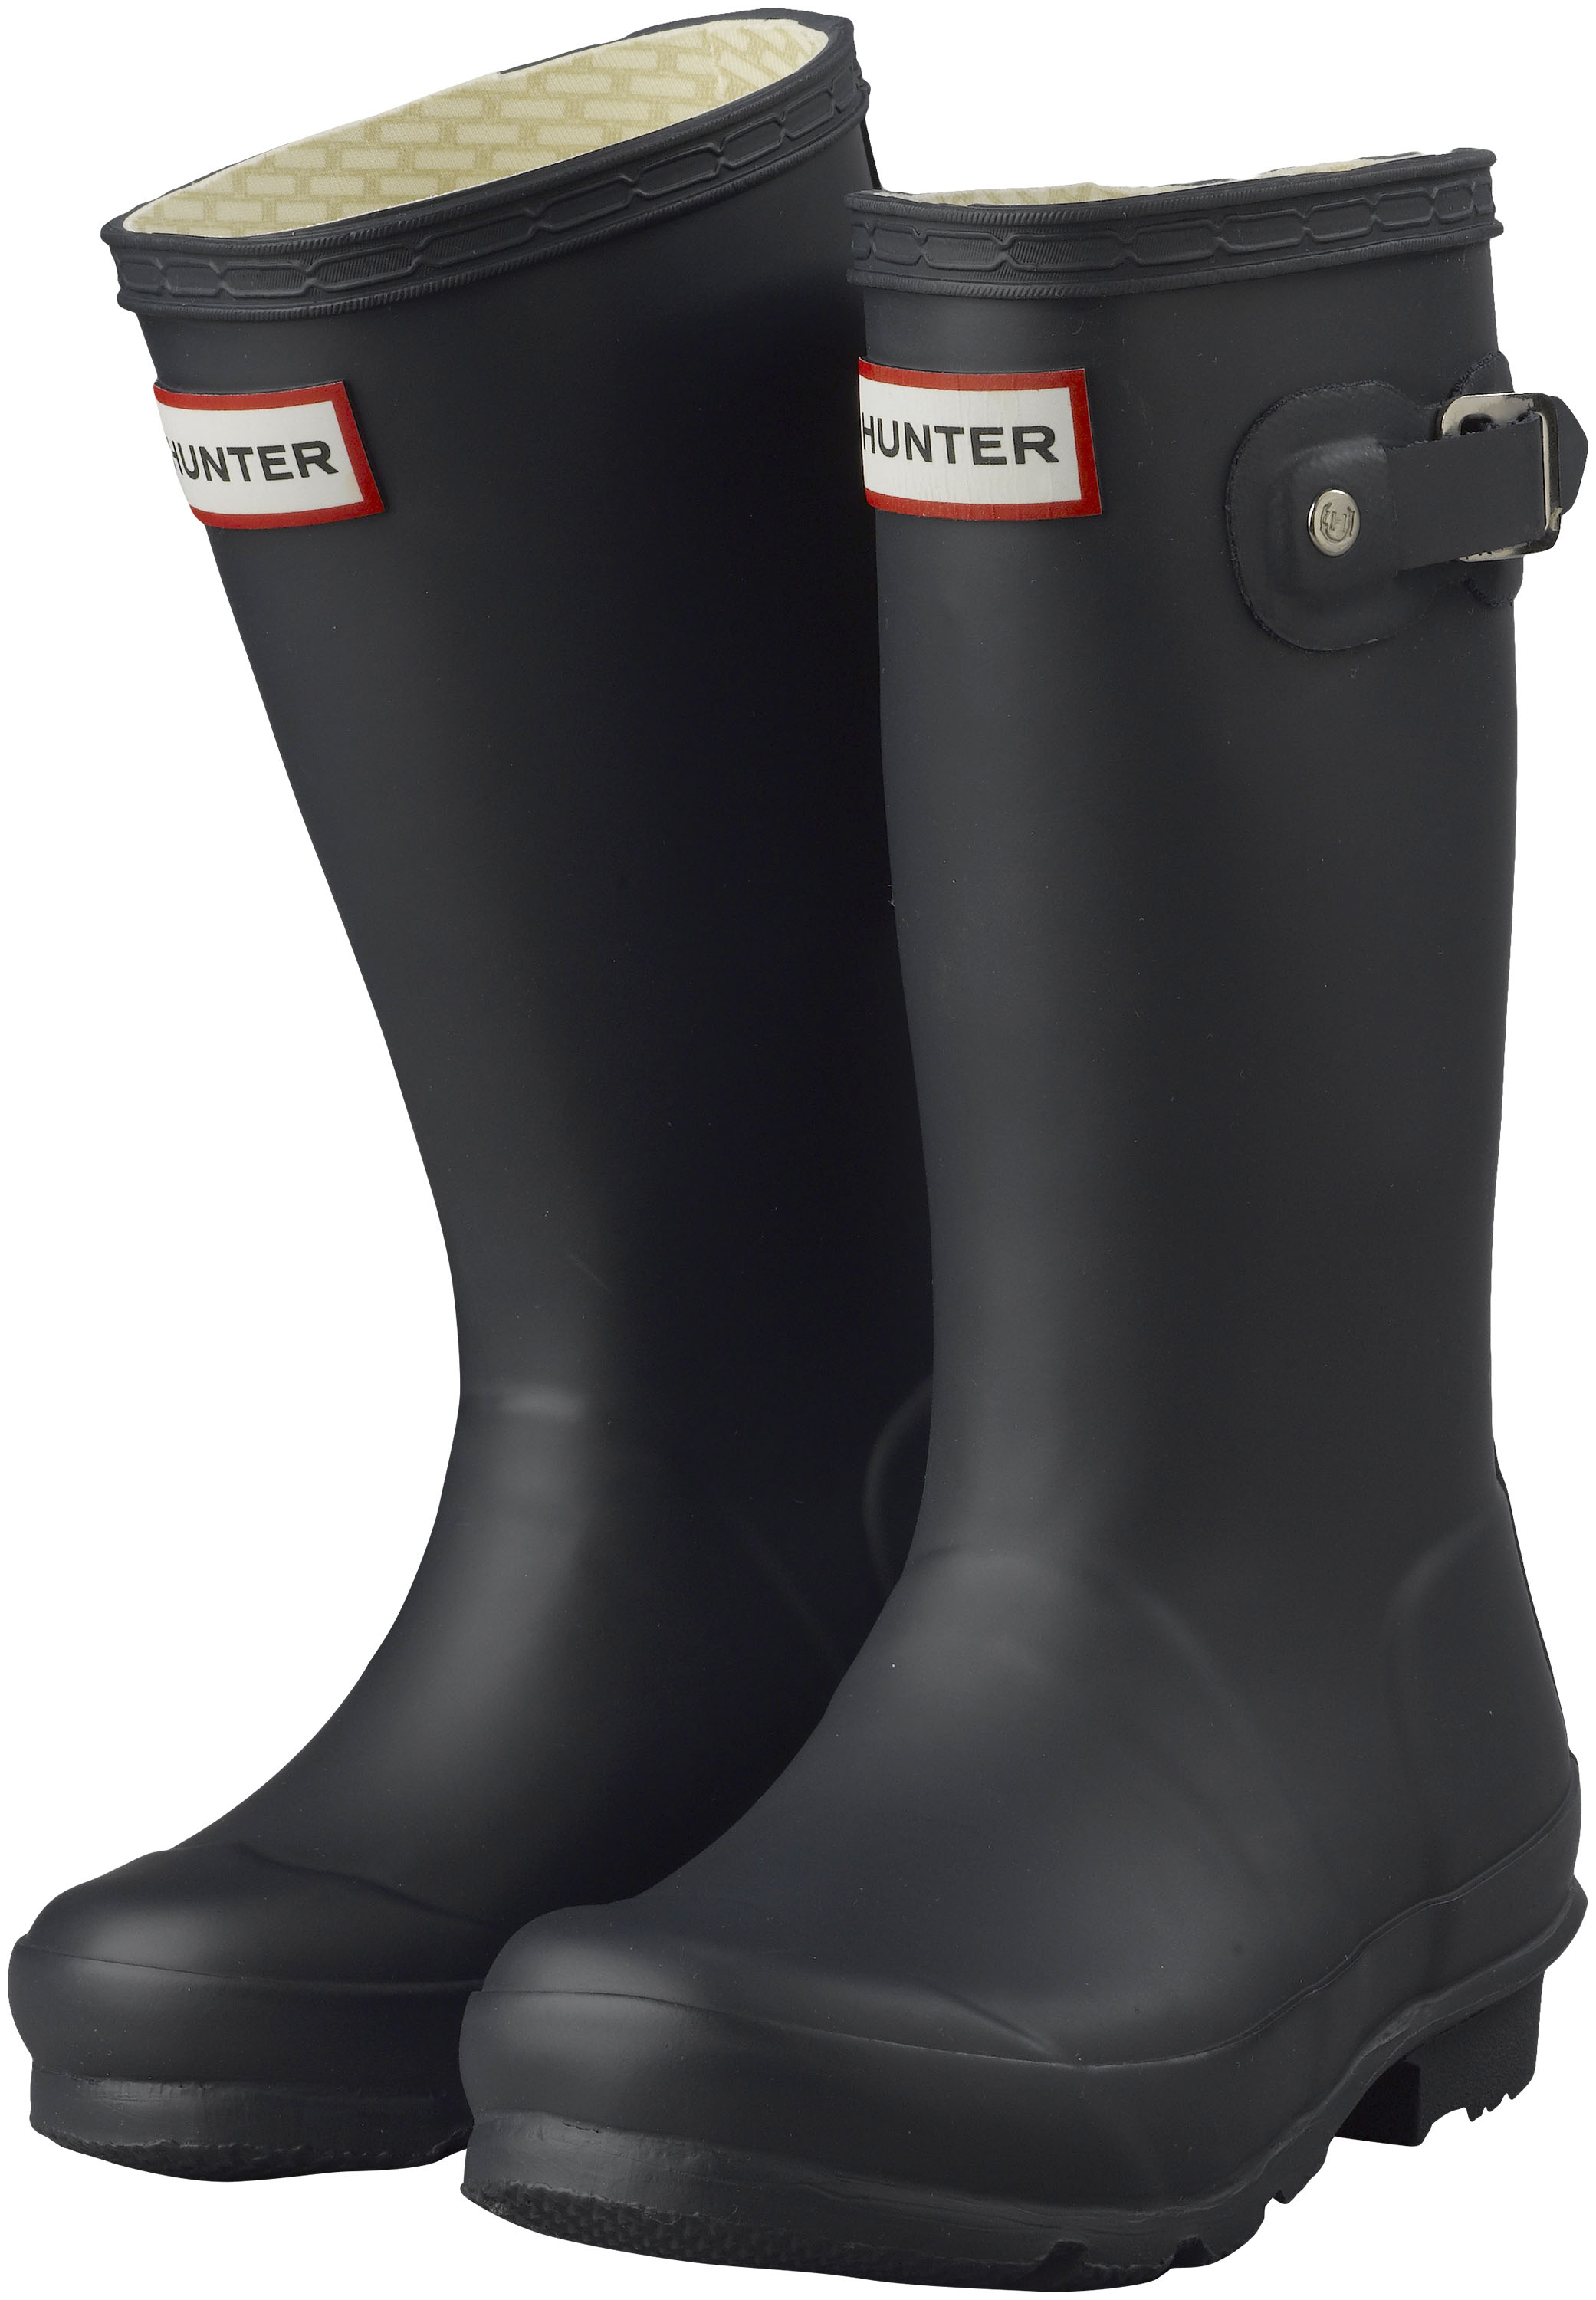 Kids Hunter Wellies Size